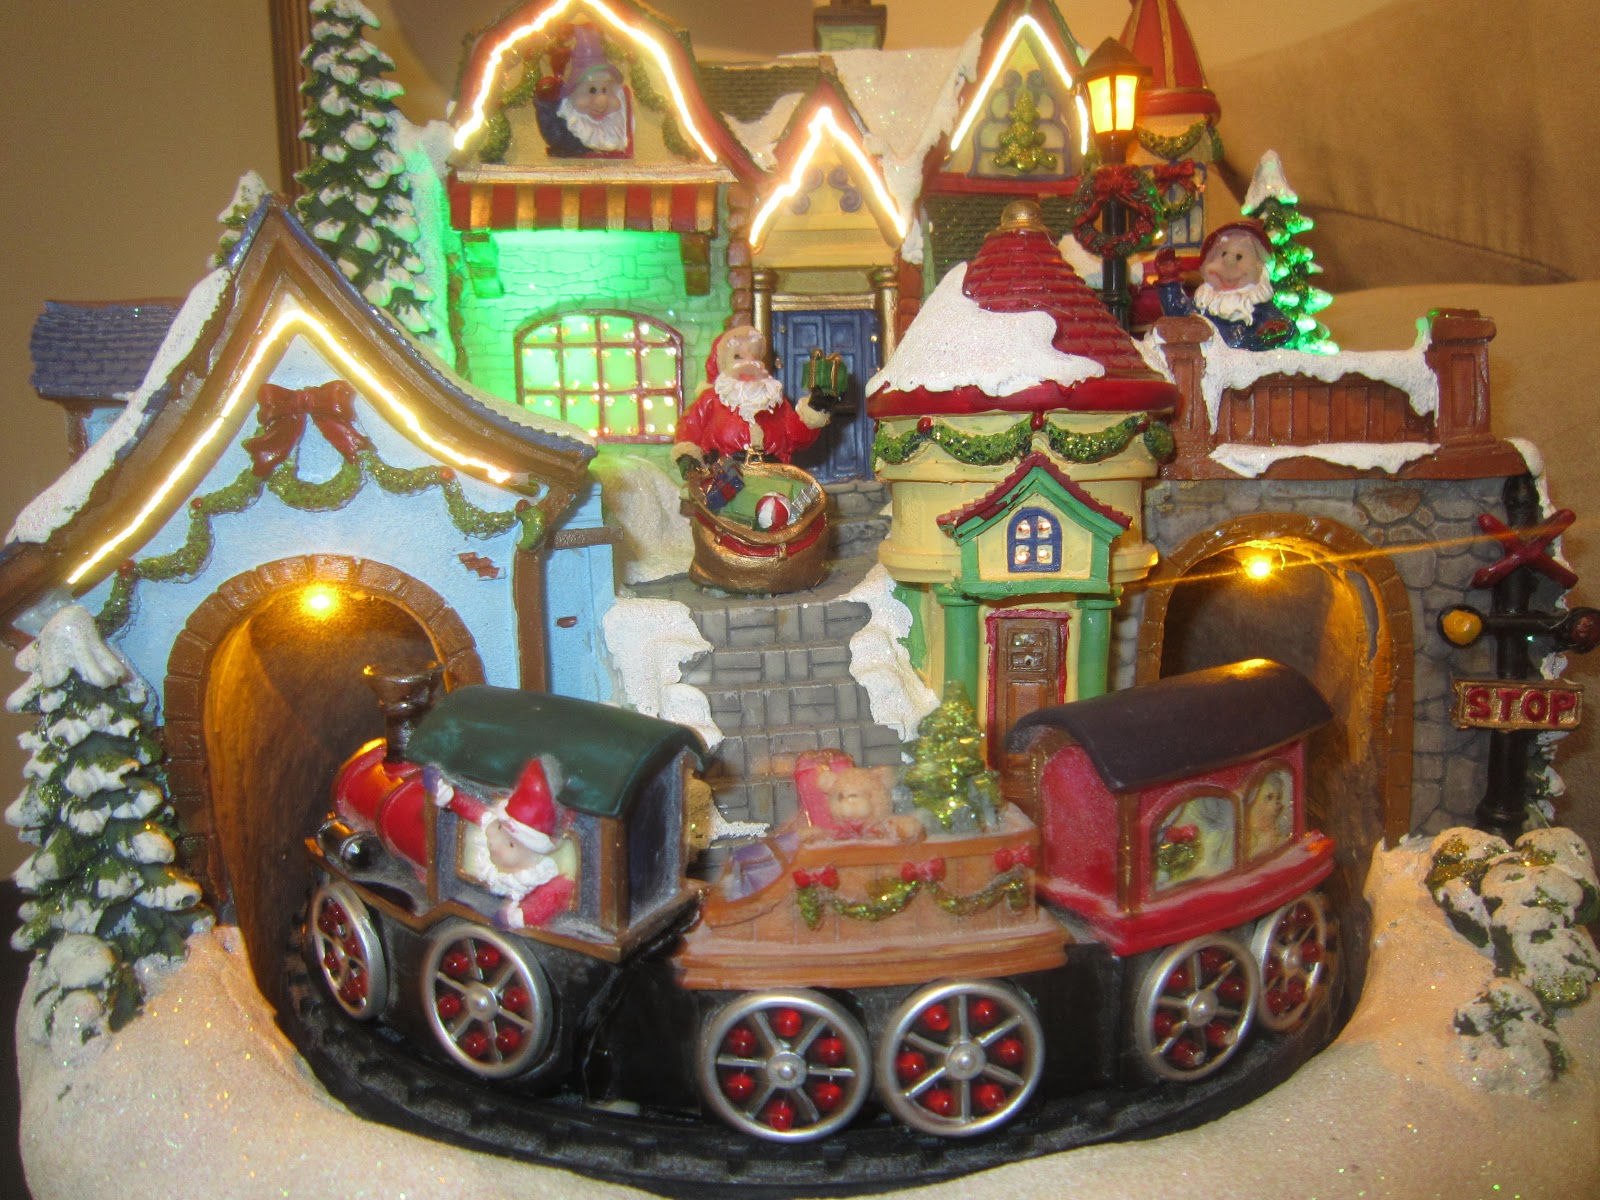 Santa's village, Christmas, Christmas decoration, Christmas train